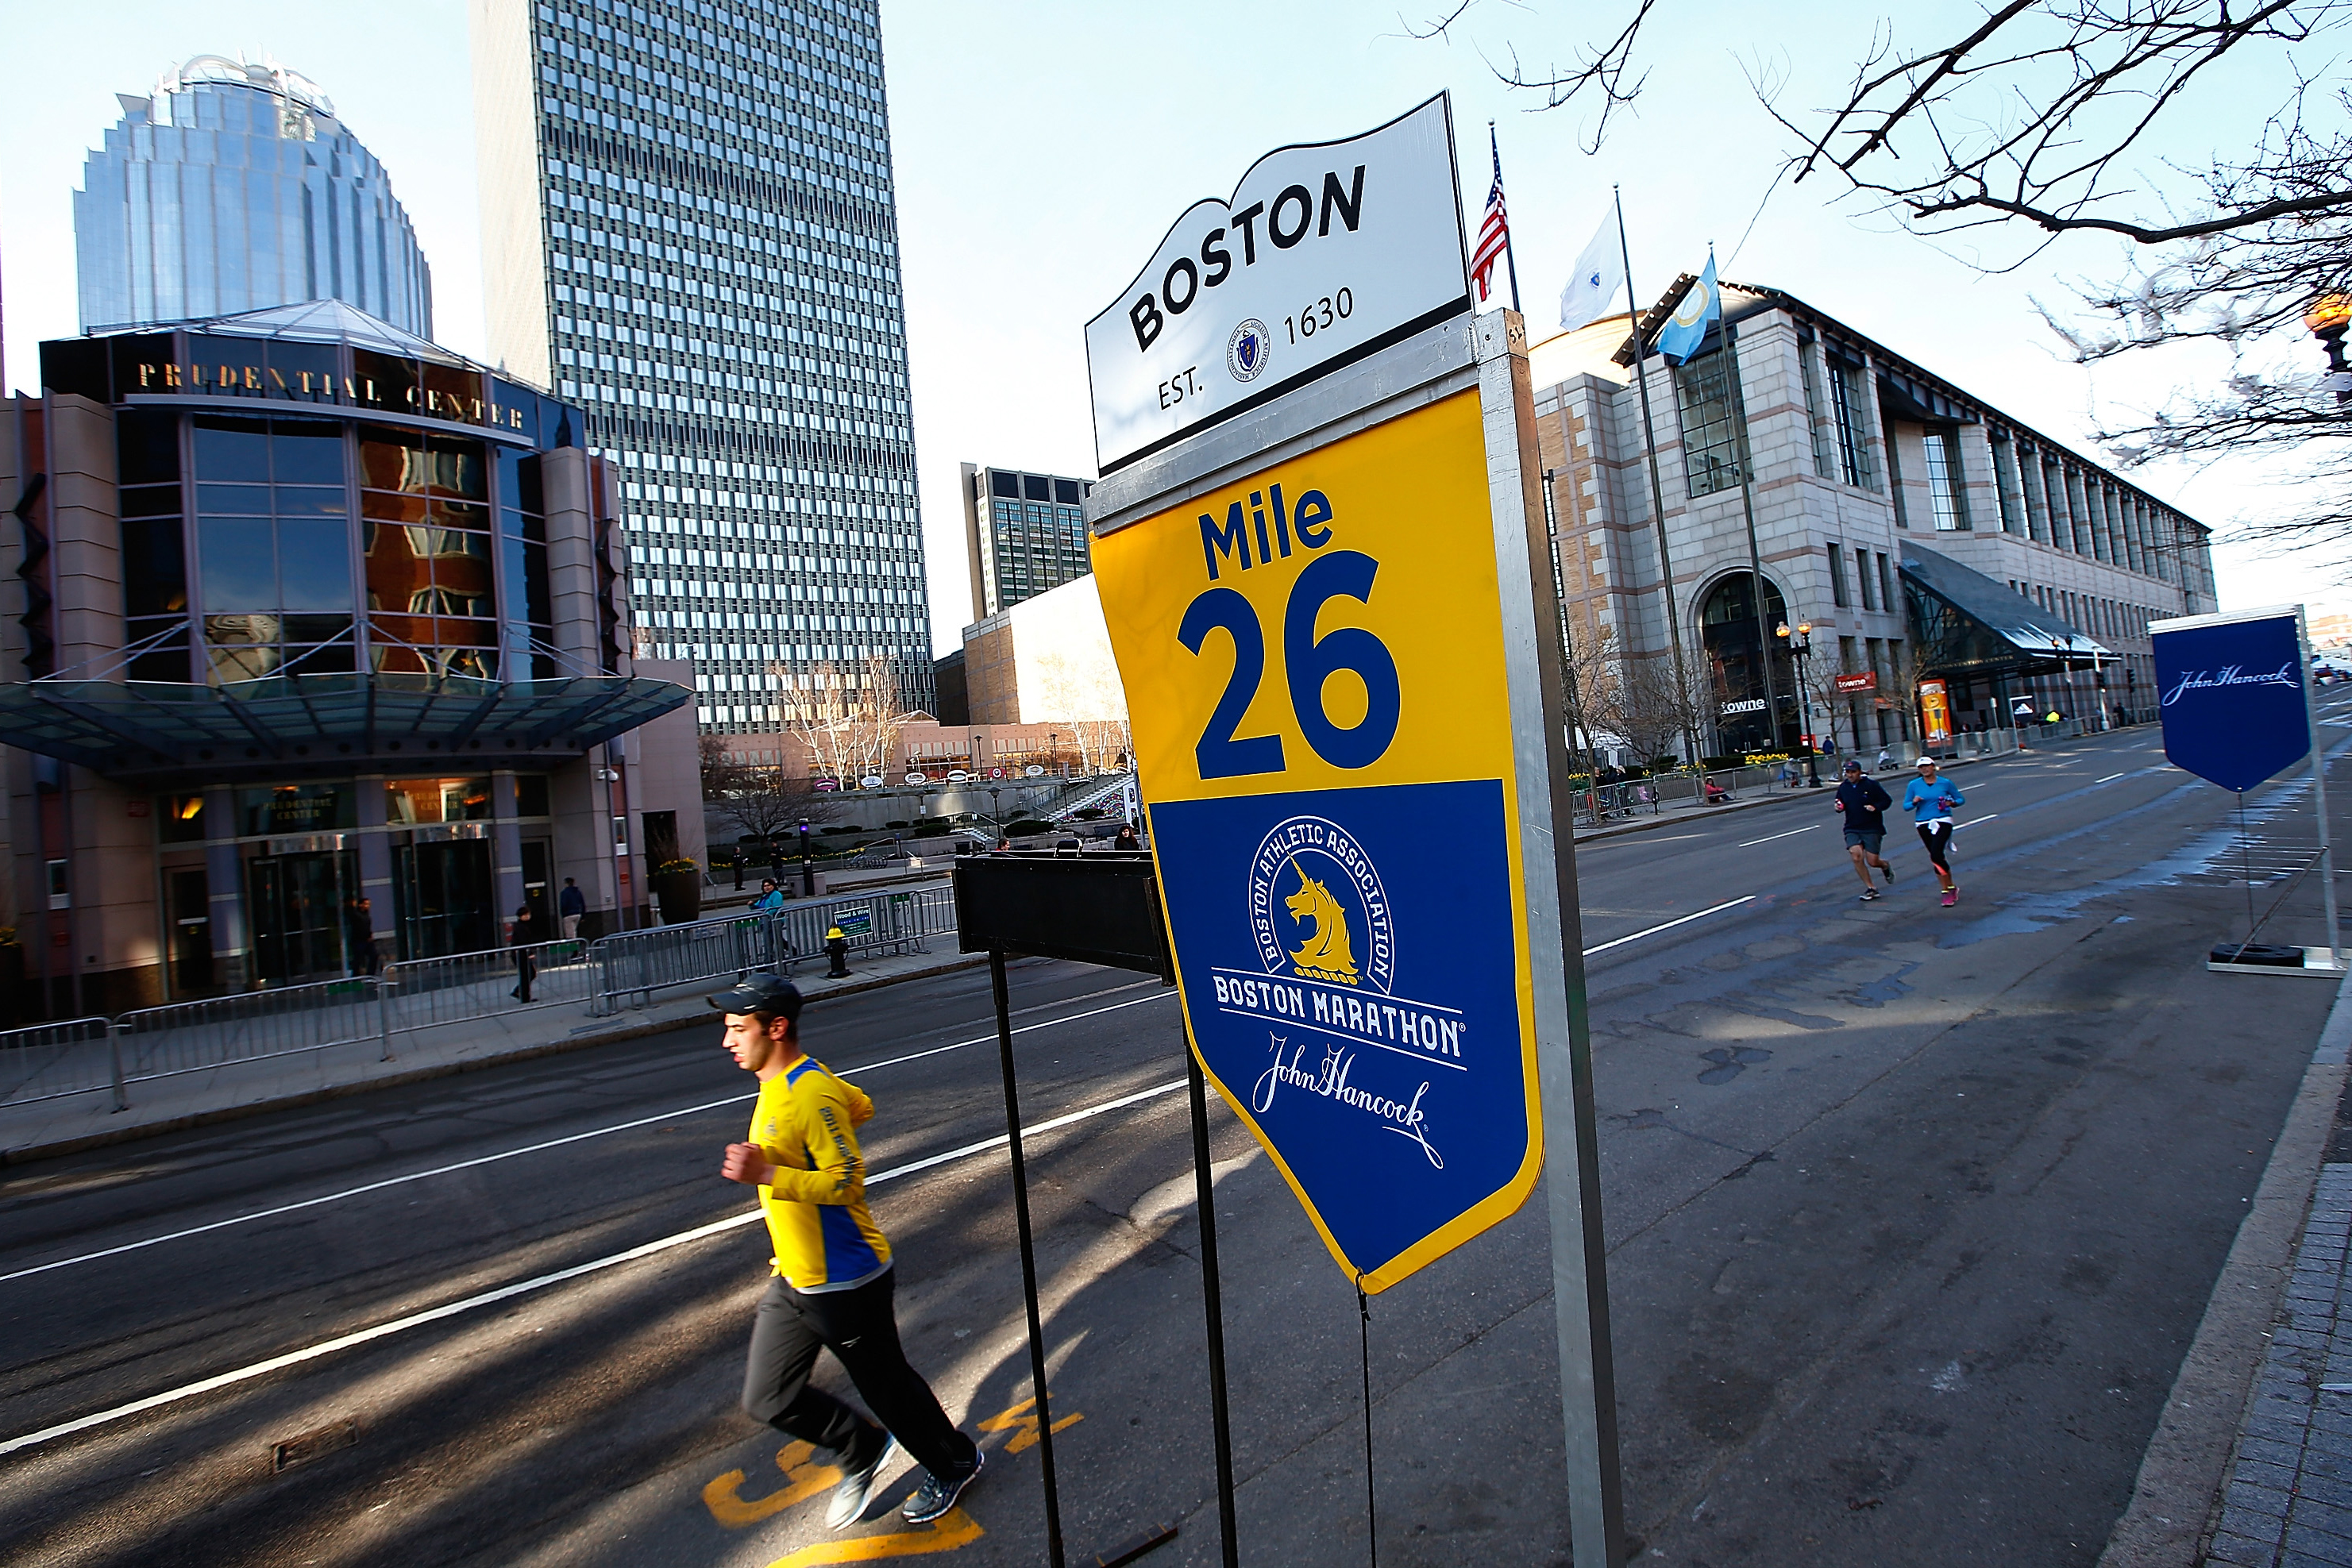 A few people run along Boylston Street near the 26 mile marker prior to the start of the Boston Marathon. (Photo by Jared Wickerham/Getty Images)